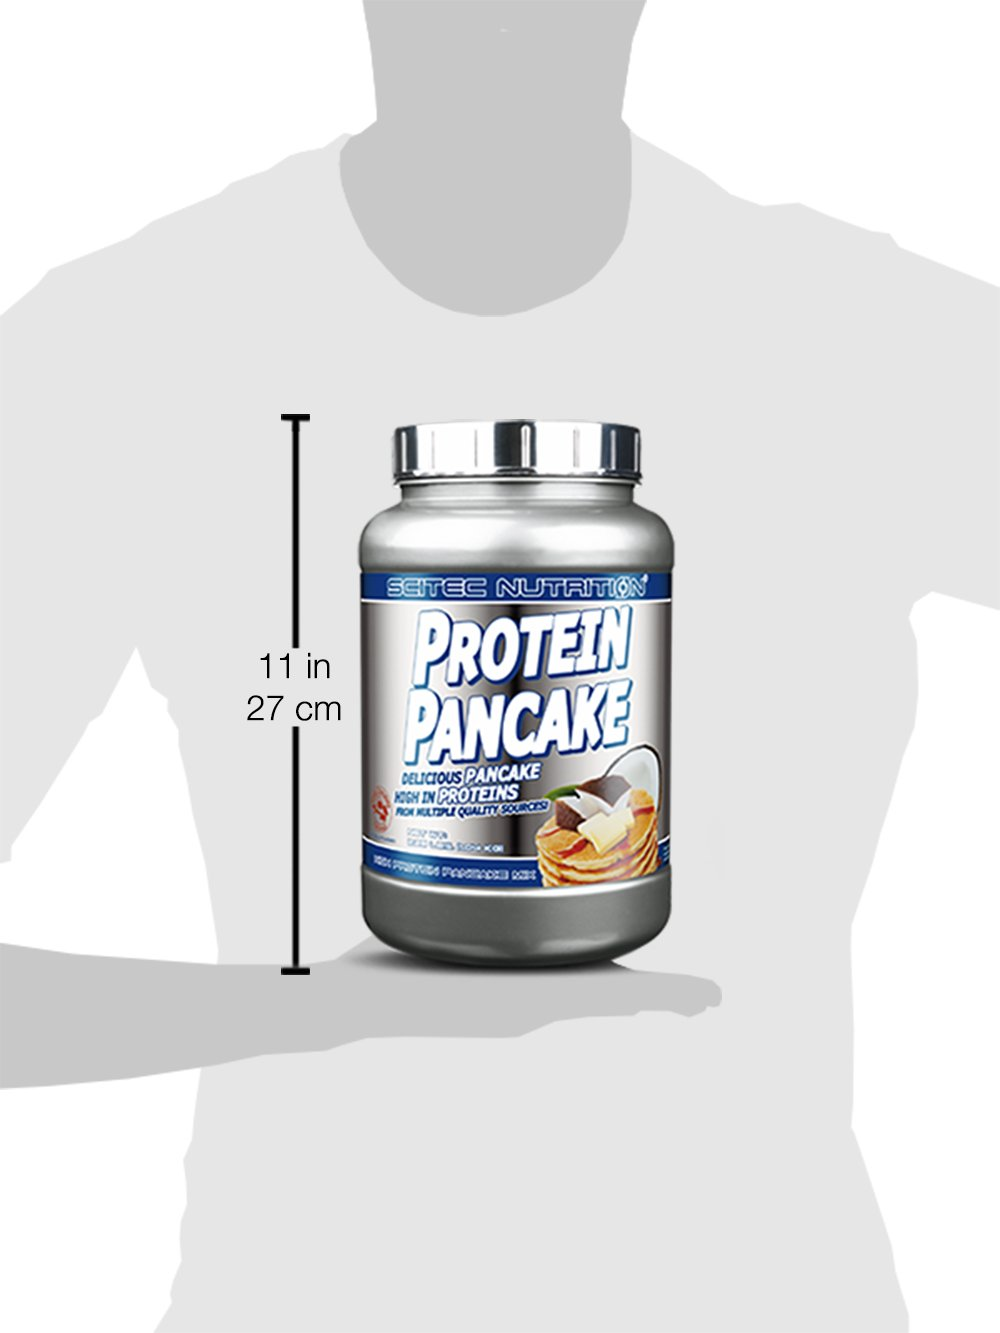 Scitec Nutrition Protein Pancake Mix - 2.28 Pound, White Chocolate Coconut by Scitec Nutrition (Image #3)